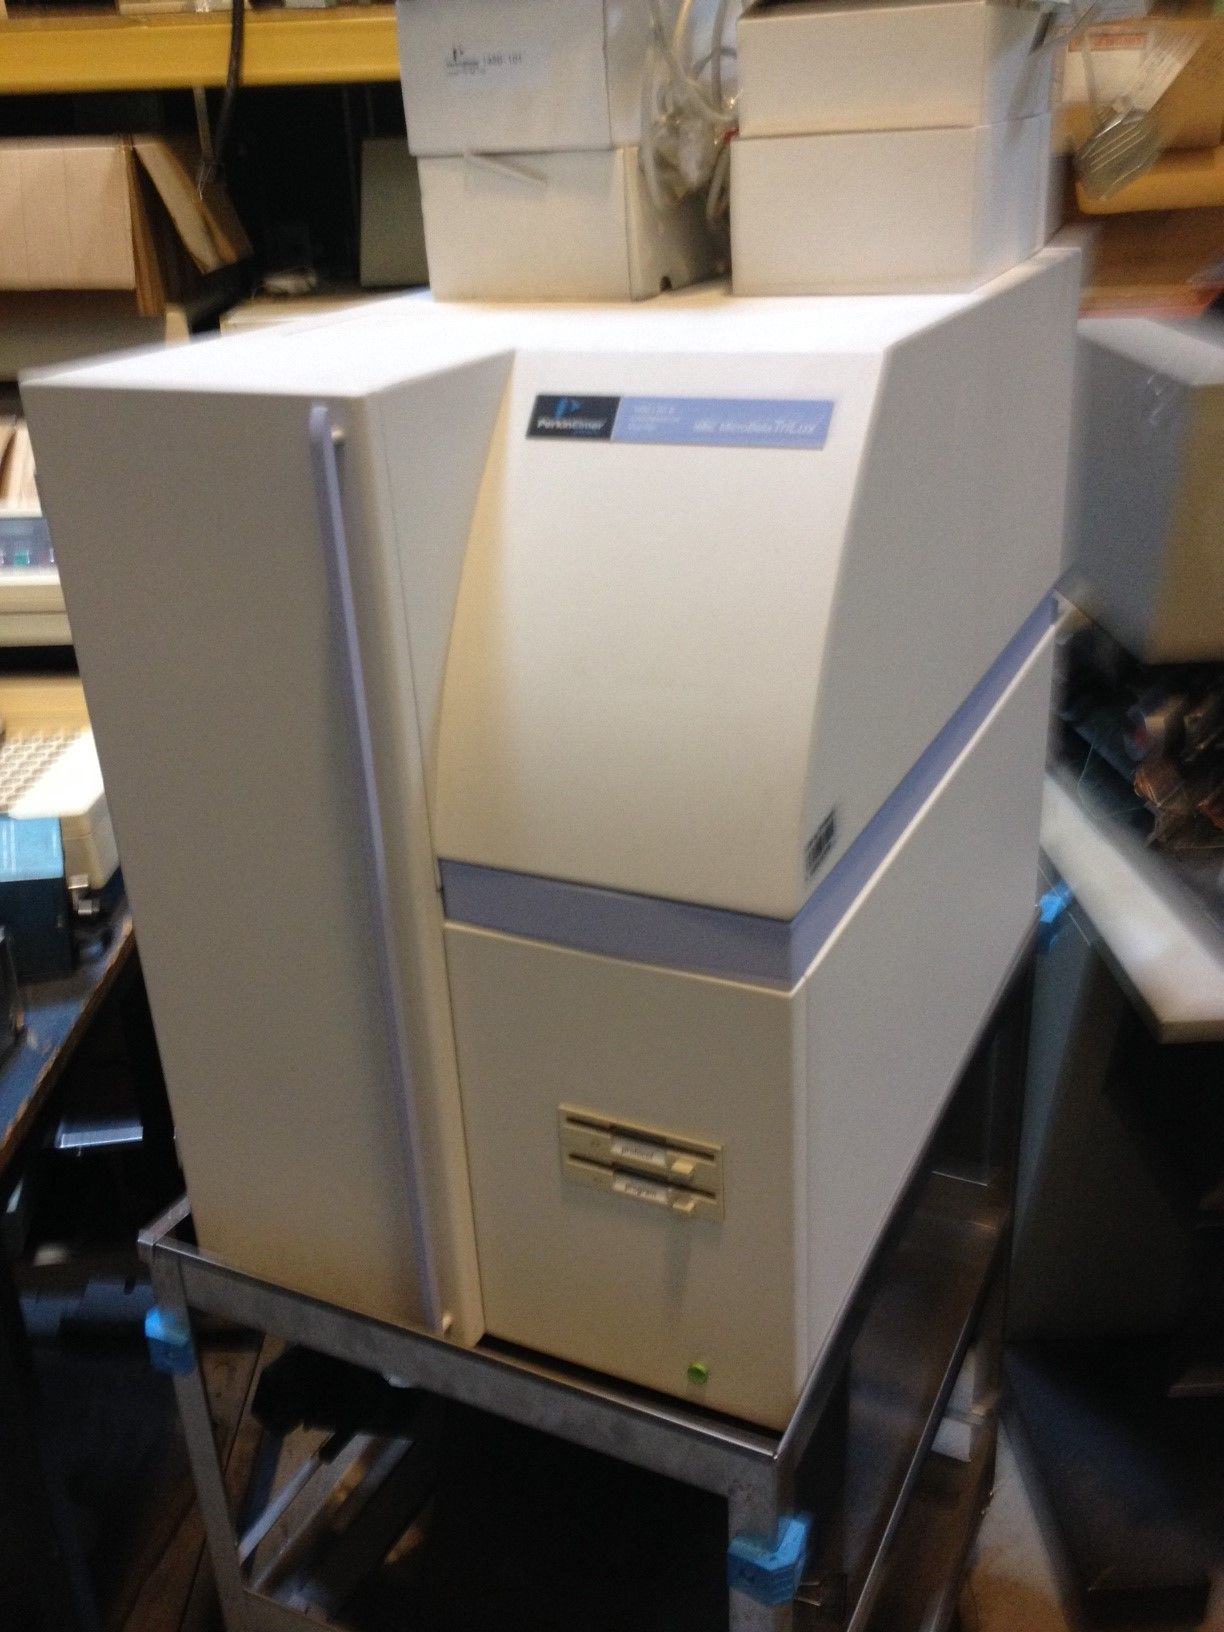 Perkin Elmer Wallac Microbeta Trilux 1450-028 Microplate Scintillation and Luminescence Analyzer